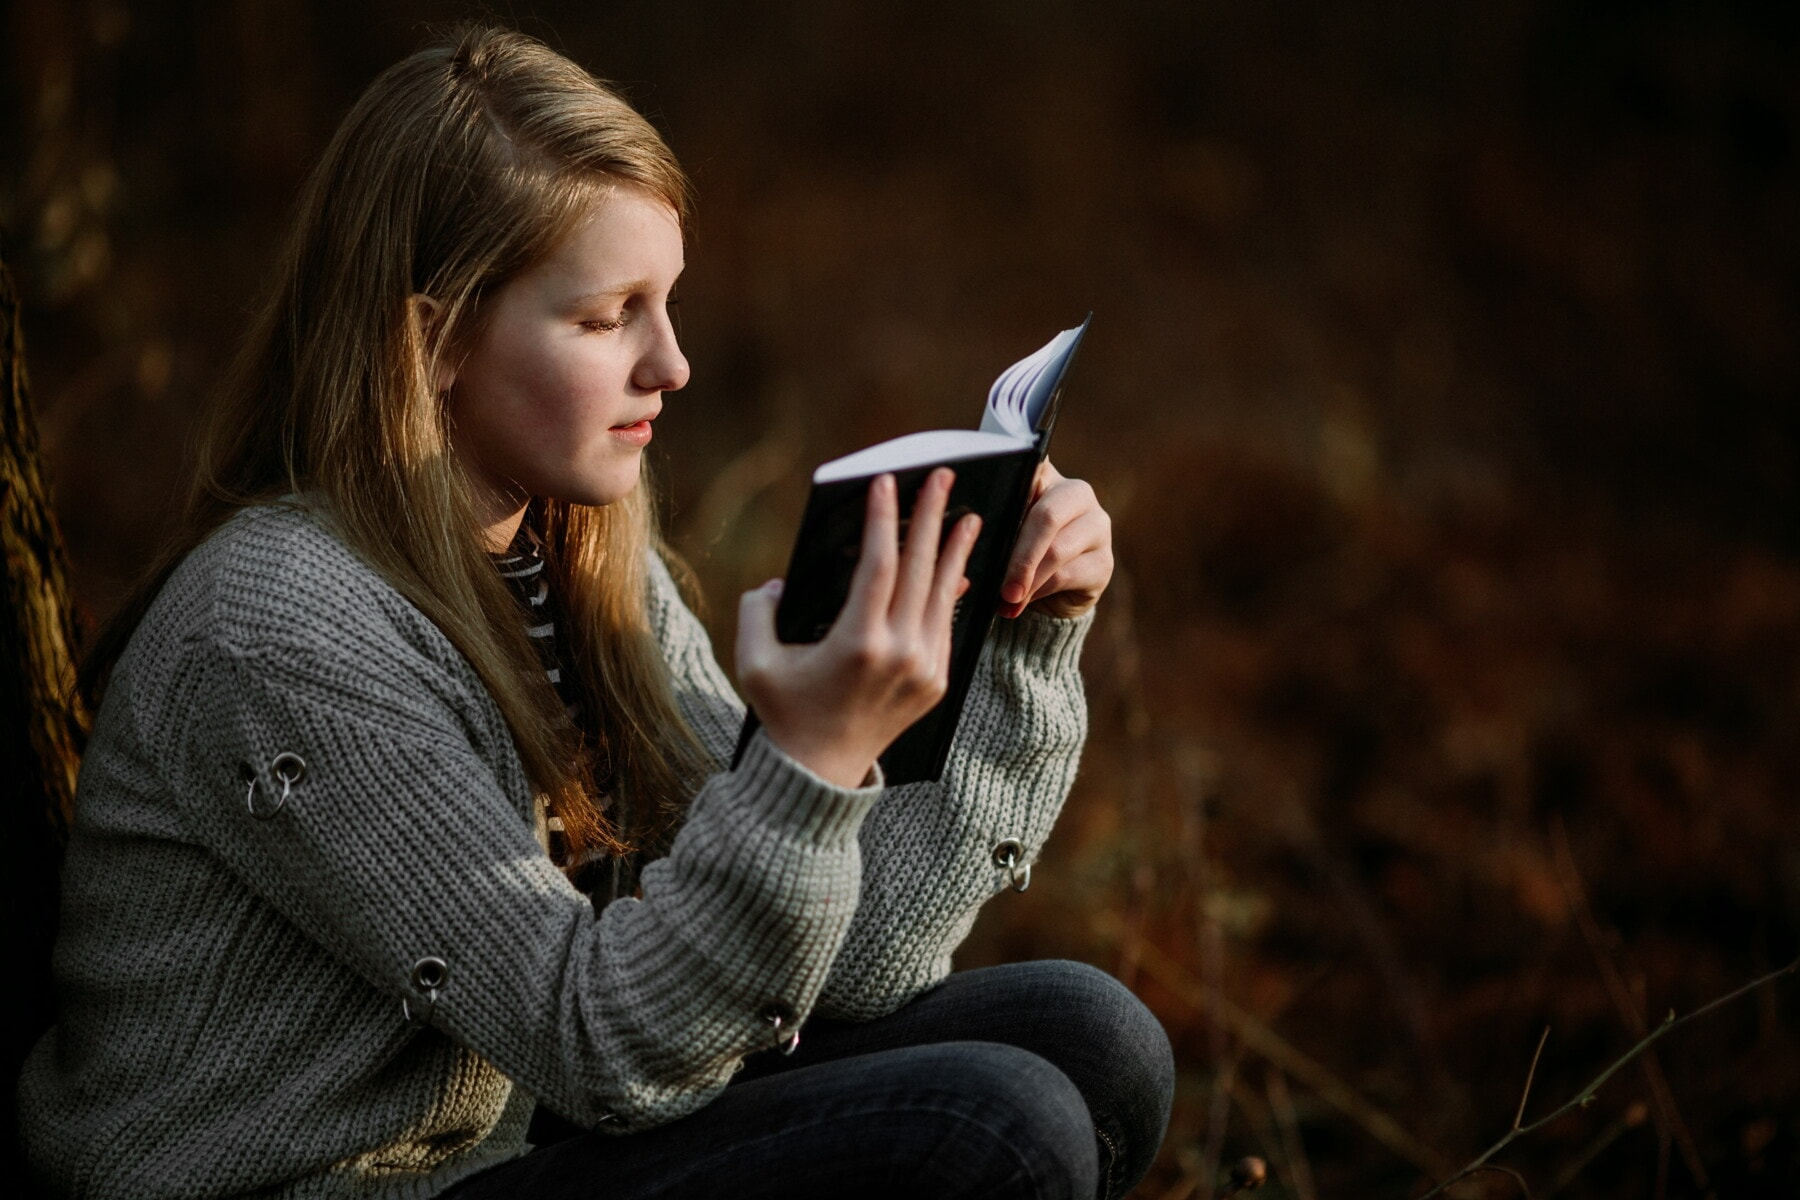 young woman, student, teenager, reading, book, educational program, wisdom, knowledge, education, woman